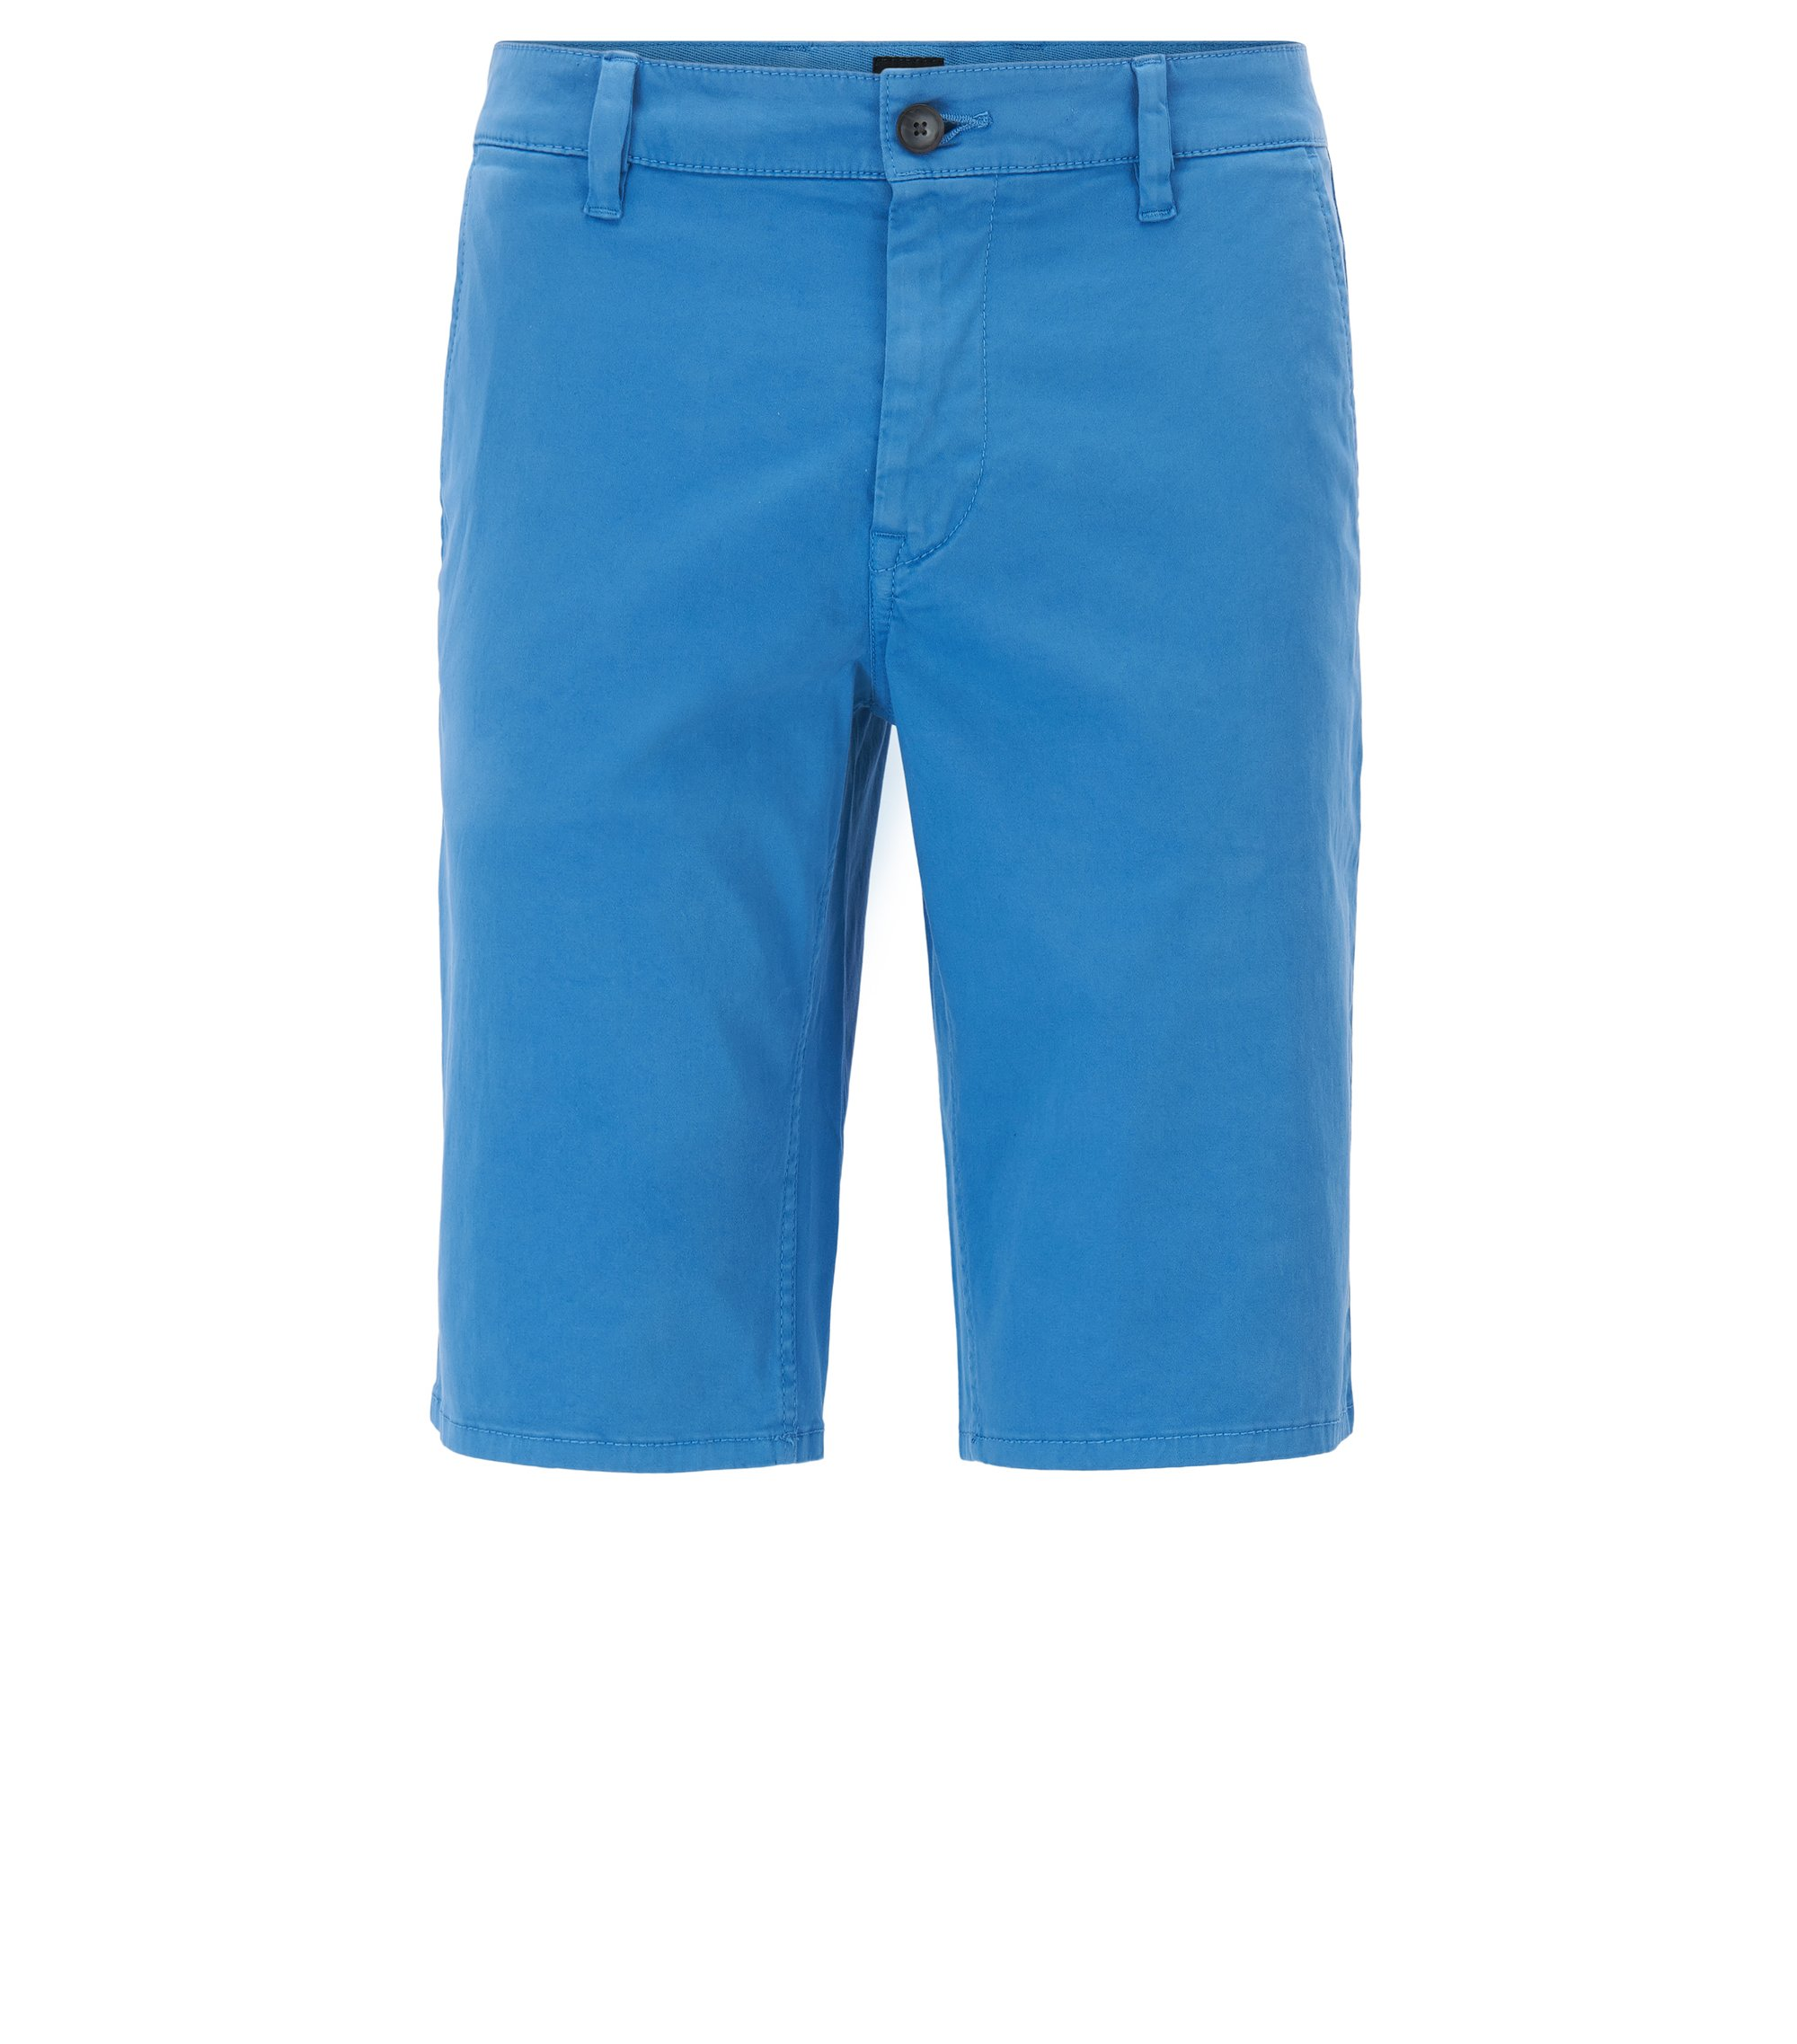 Short chino en coton stretch avec doubles passants, Bleu